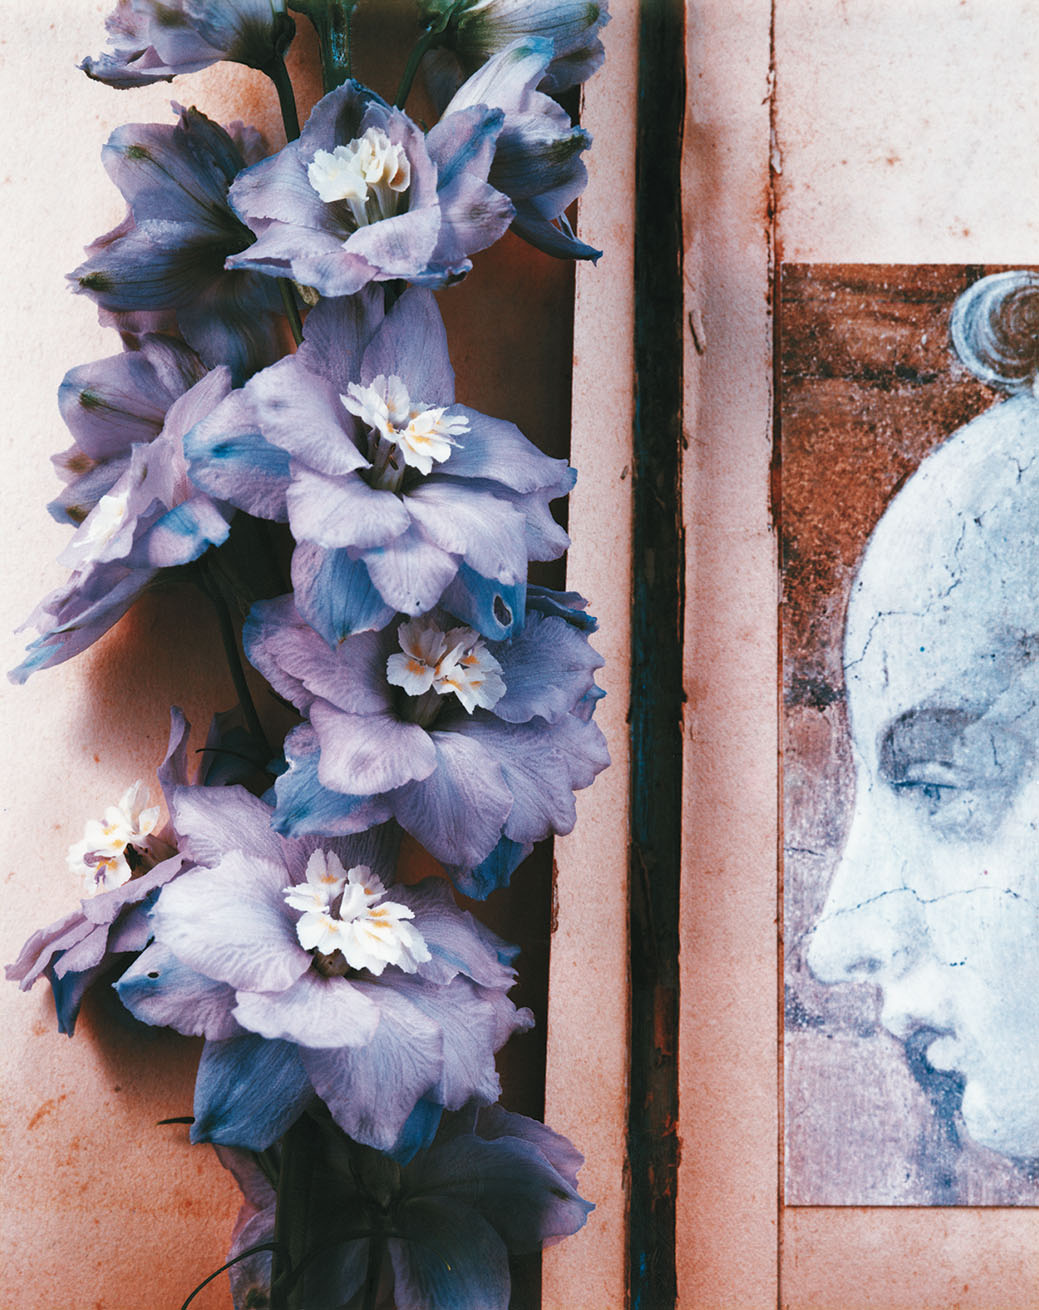 Hybrids, a color photograph featuring blue and purple flowers and an illustration of a woman's head in profile